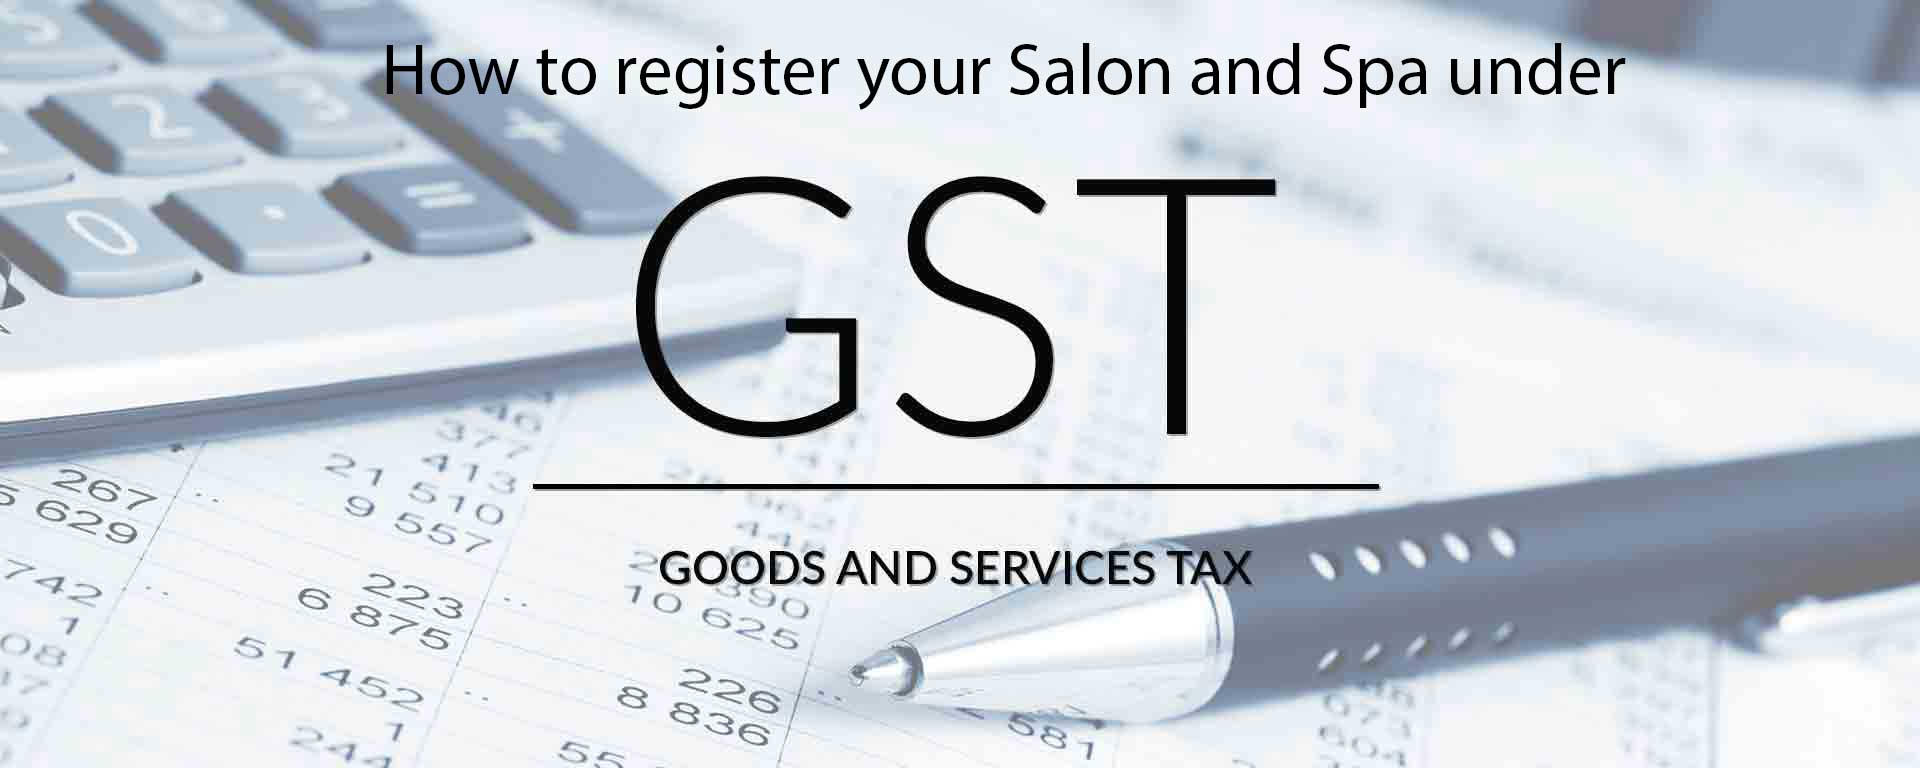 Best gst salon and spa management software india crm pos for Salon crm